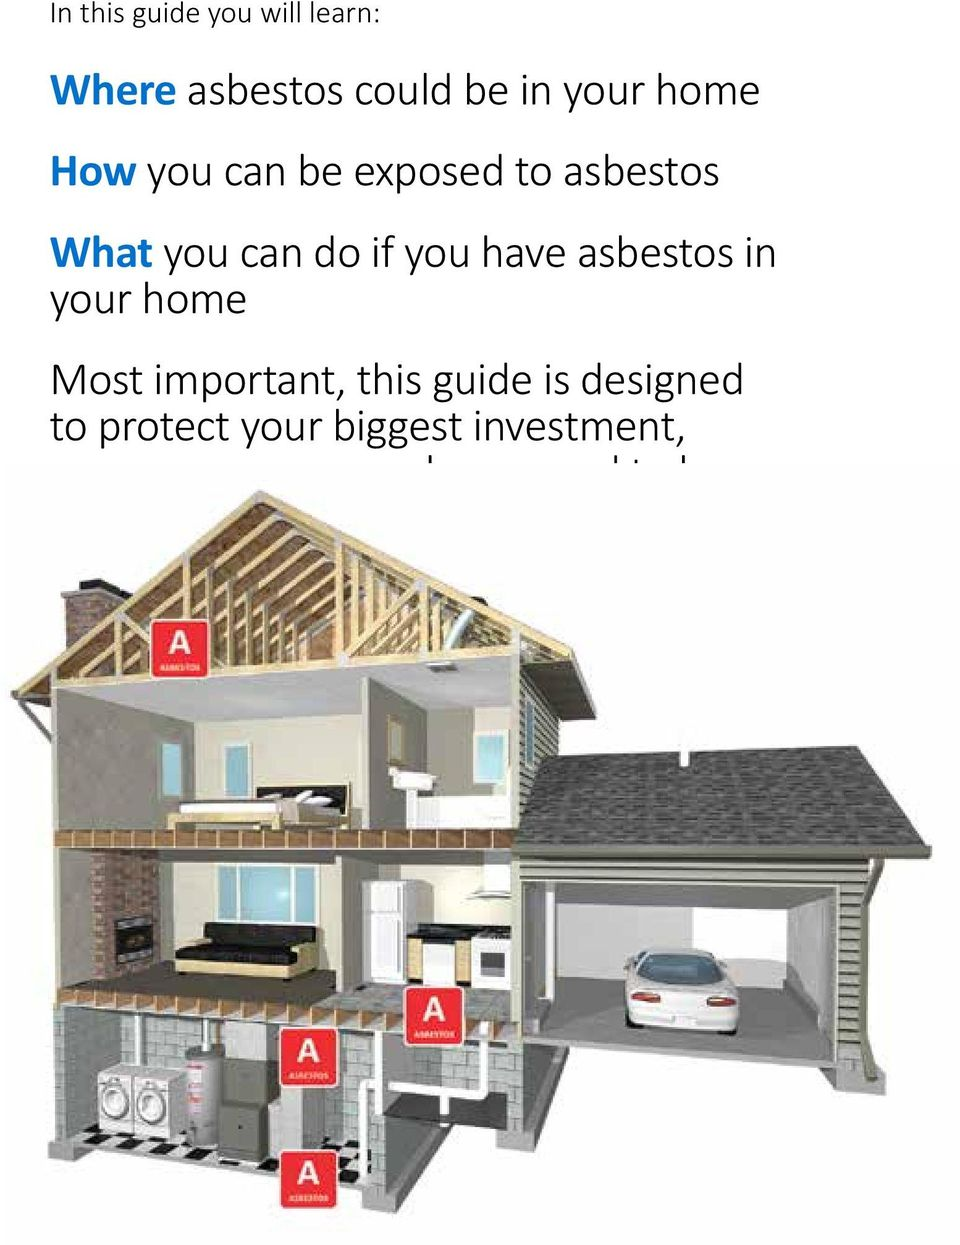 home Most important, this guide is designed to protect your biggest